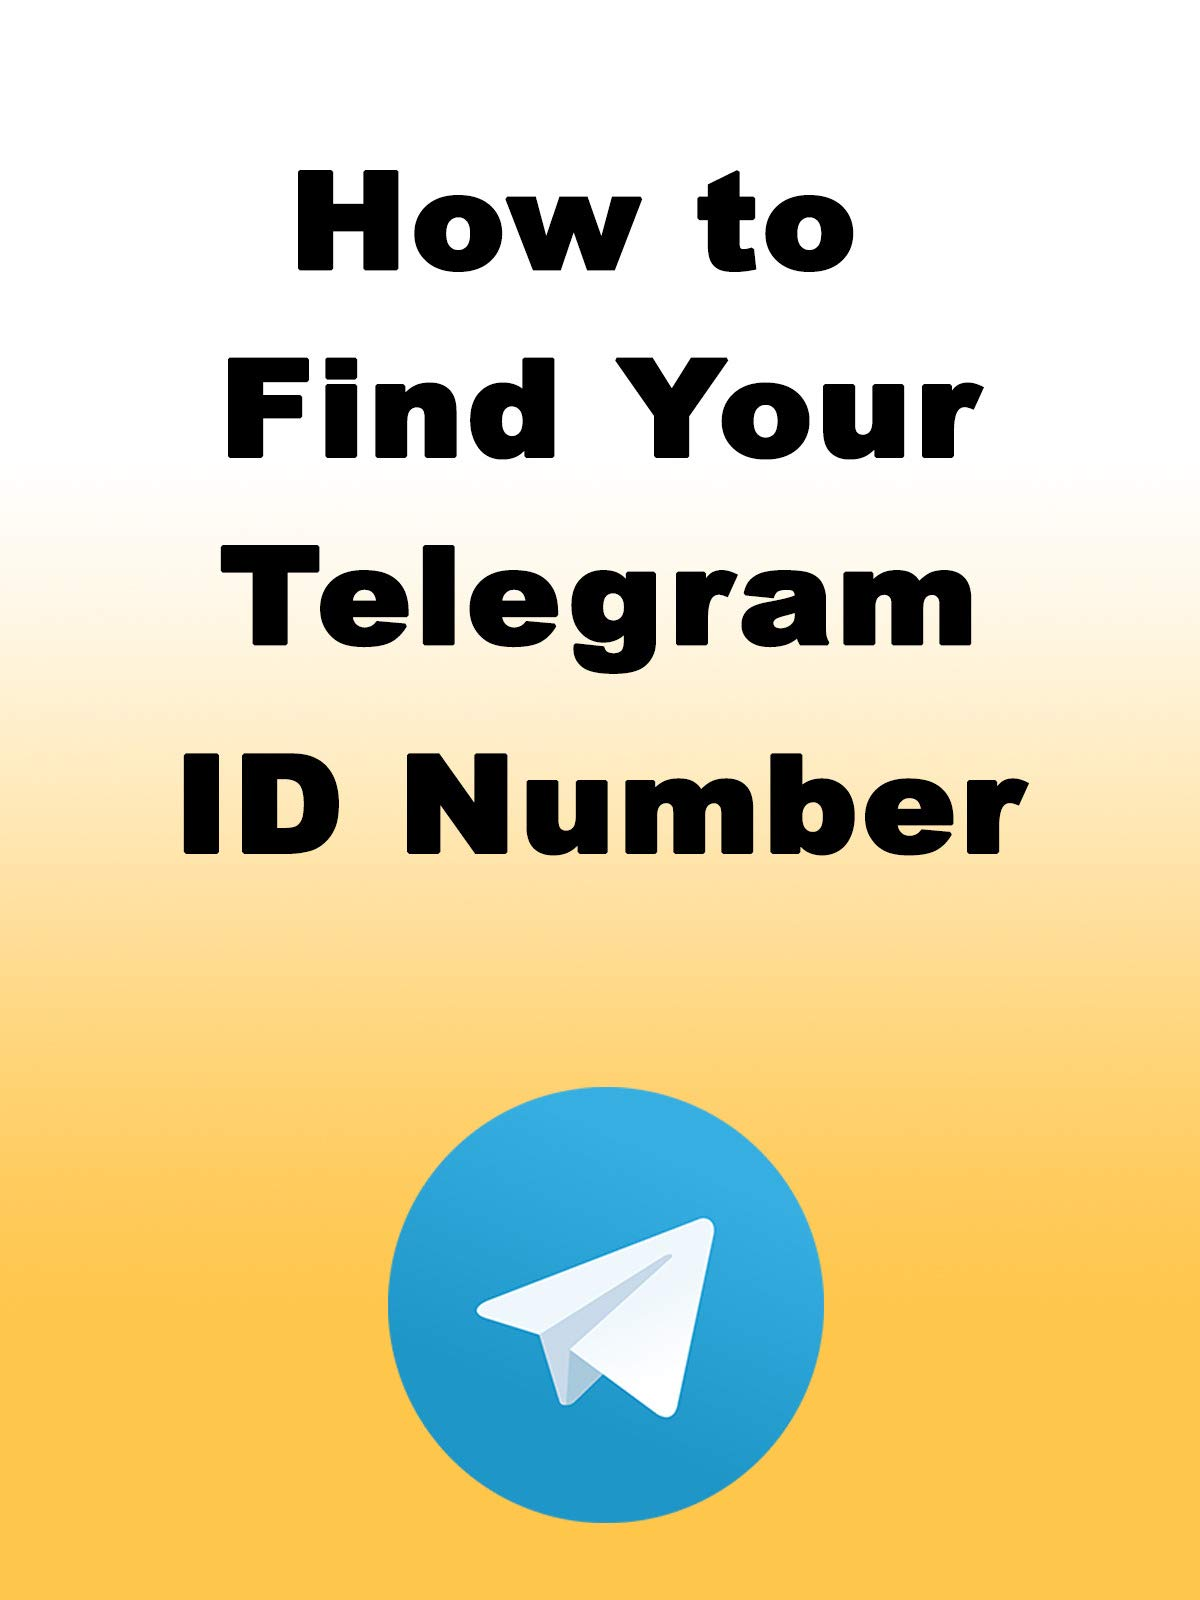 Amazon co uk: Watch How to Find Your Telegram ID Number